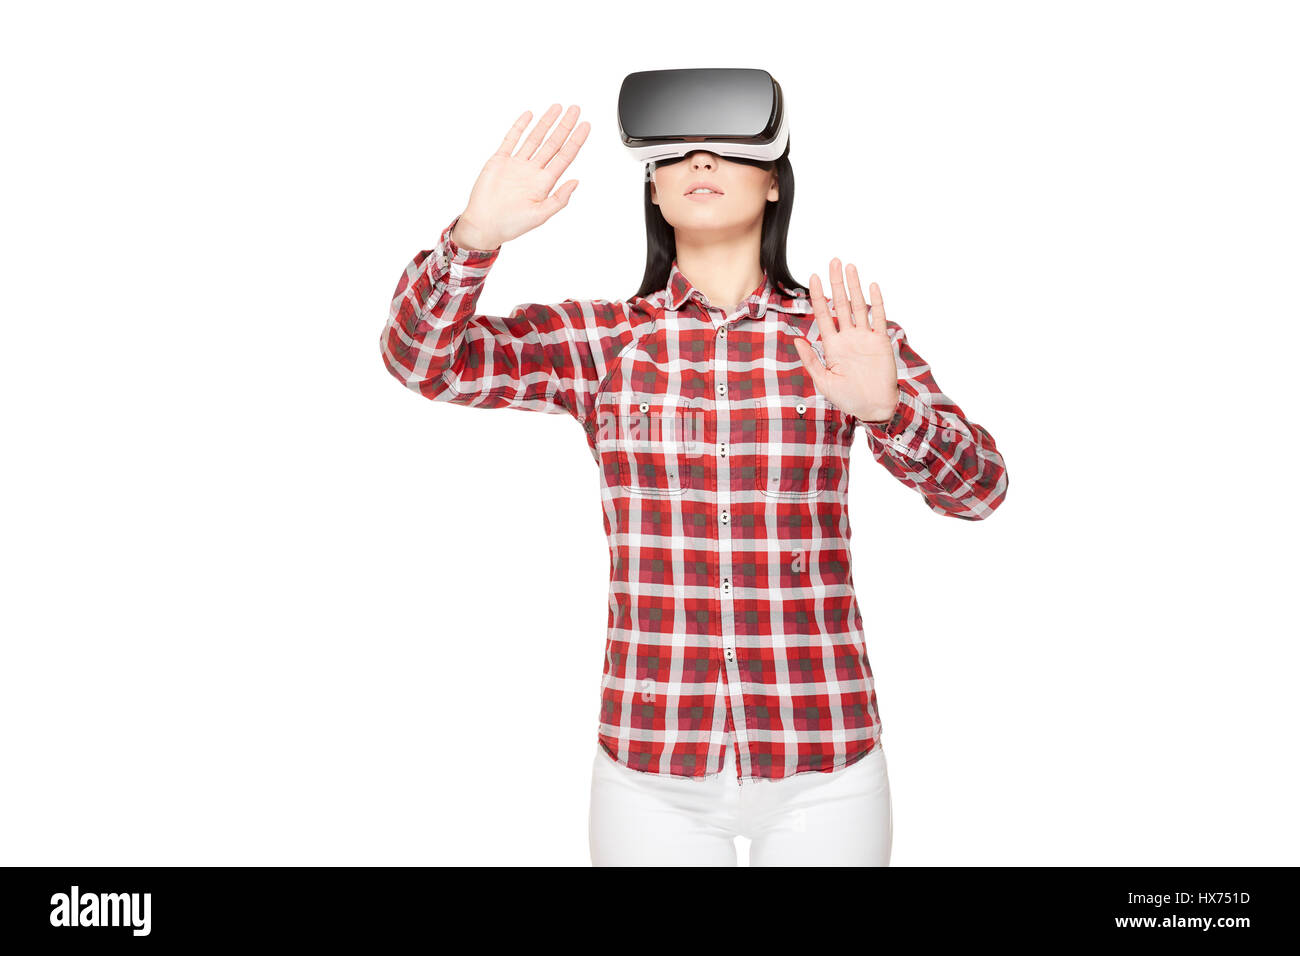 Young woman in VR headset traveling in cyberspace. - Stock Image